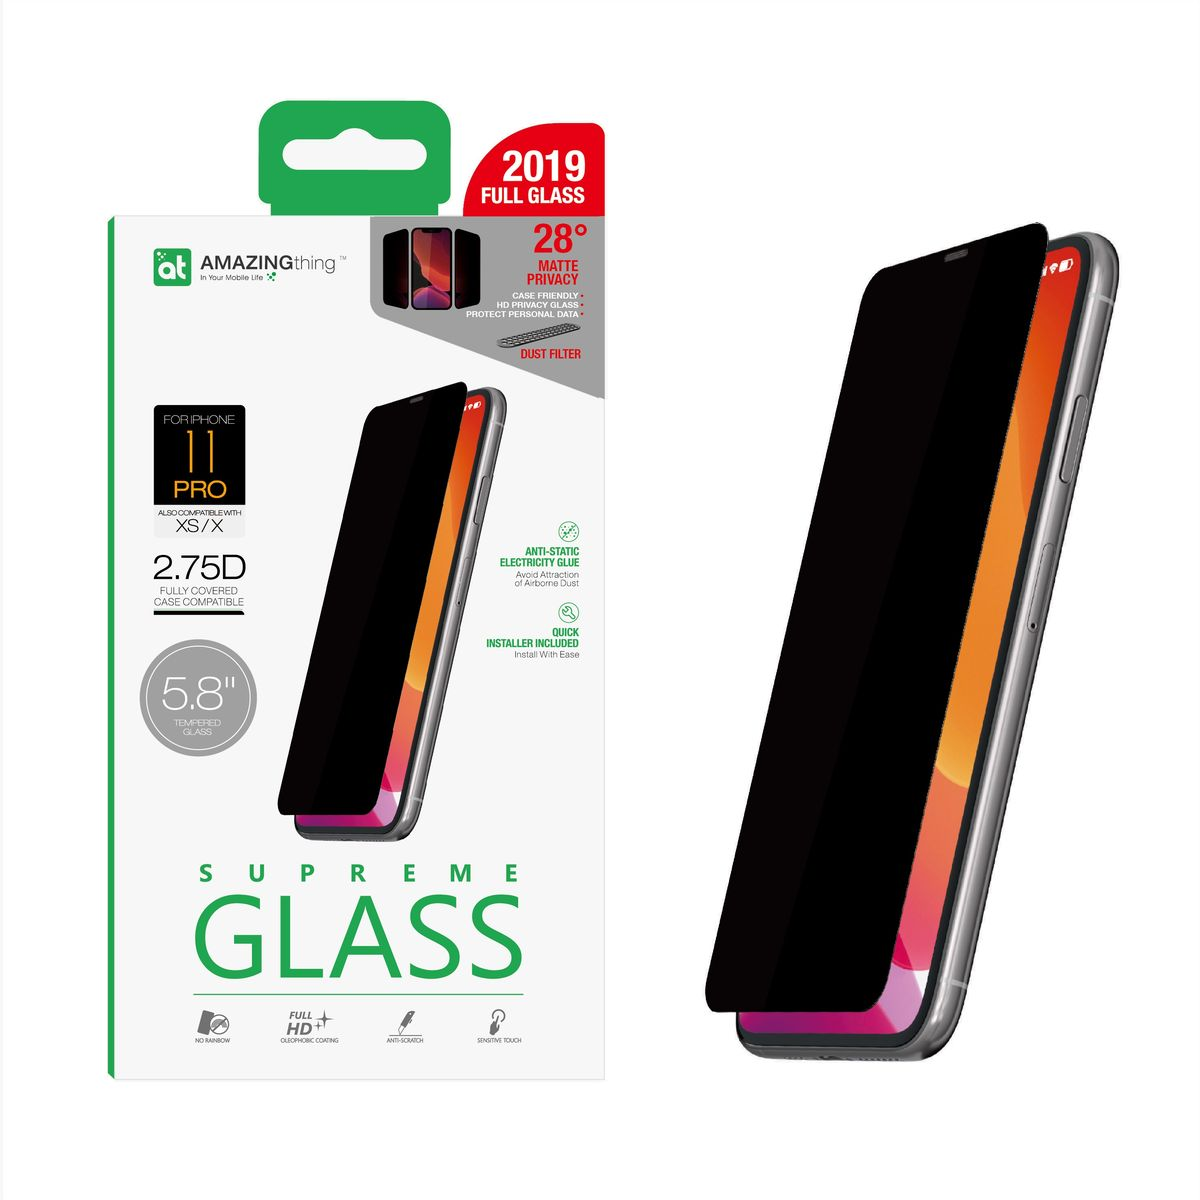 Amazing Thing 0.3M 2.75D Matte Privacy Screen Protector Black for iPhone 11 Pro with Installer